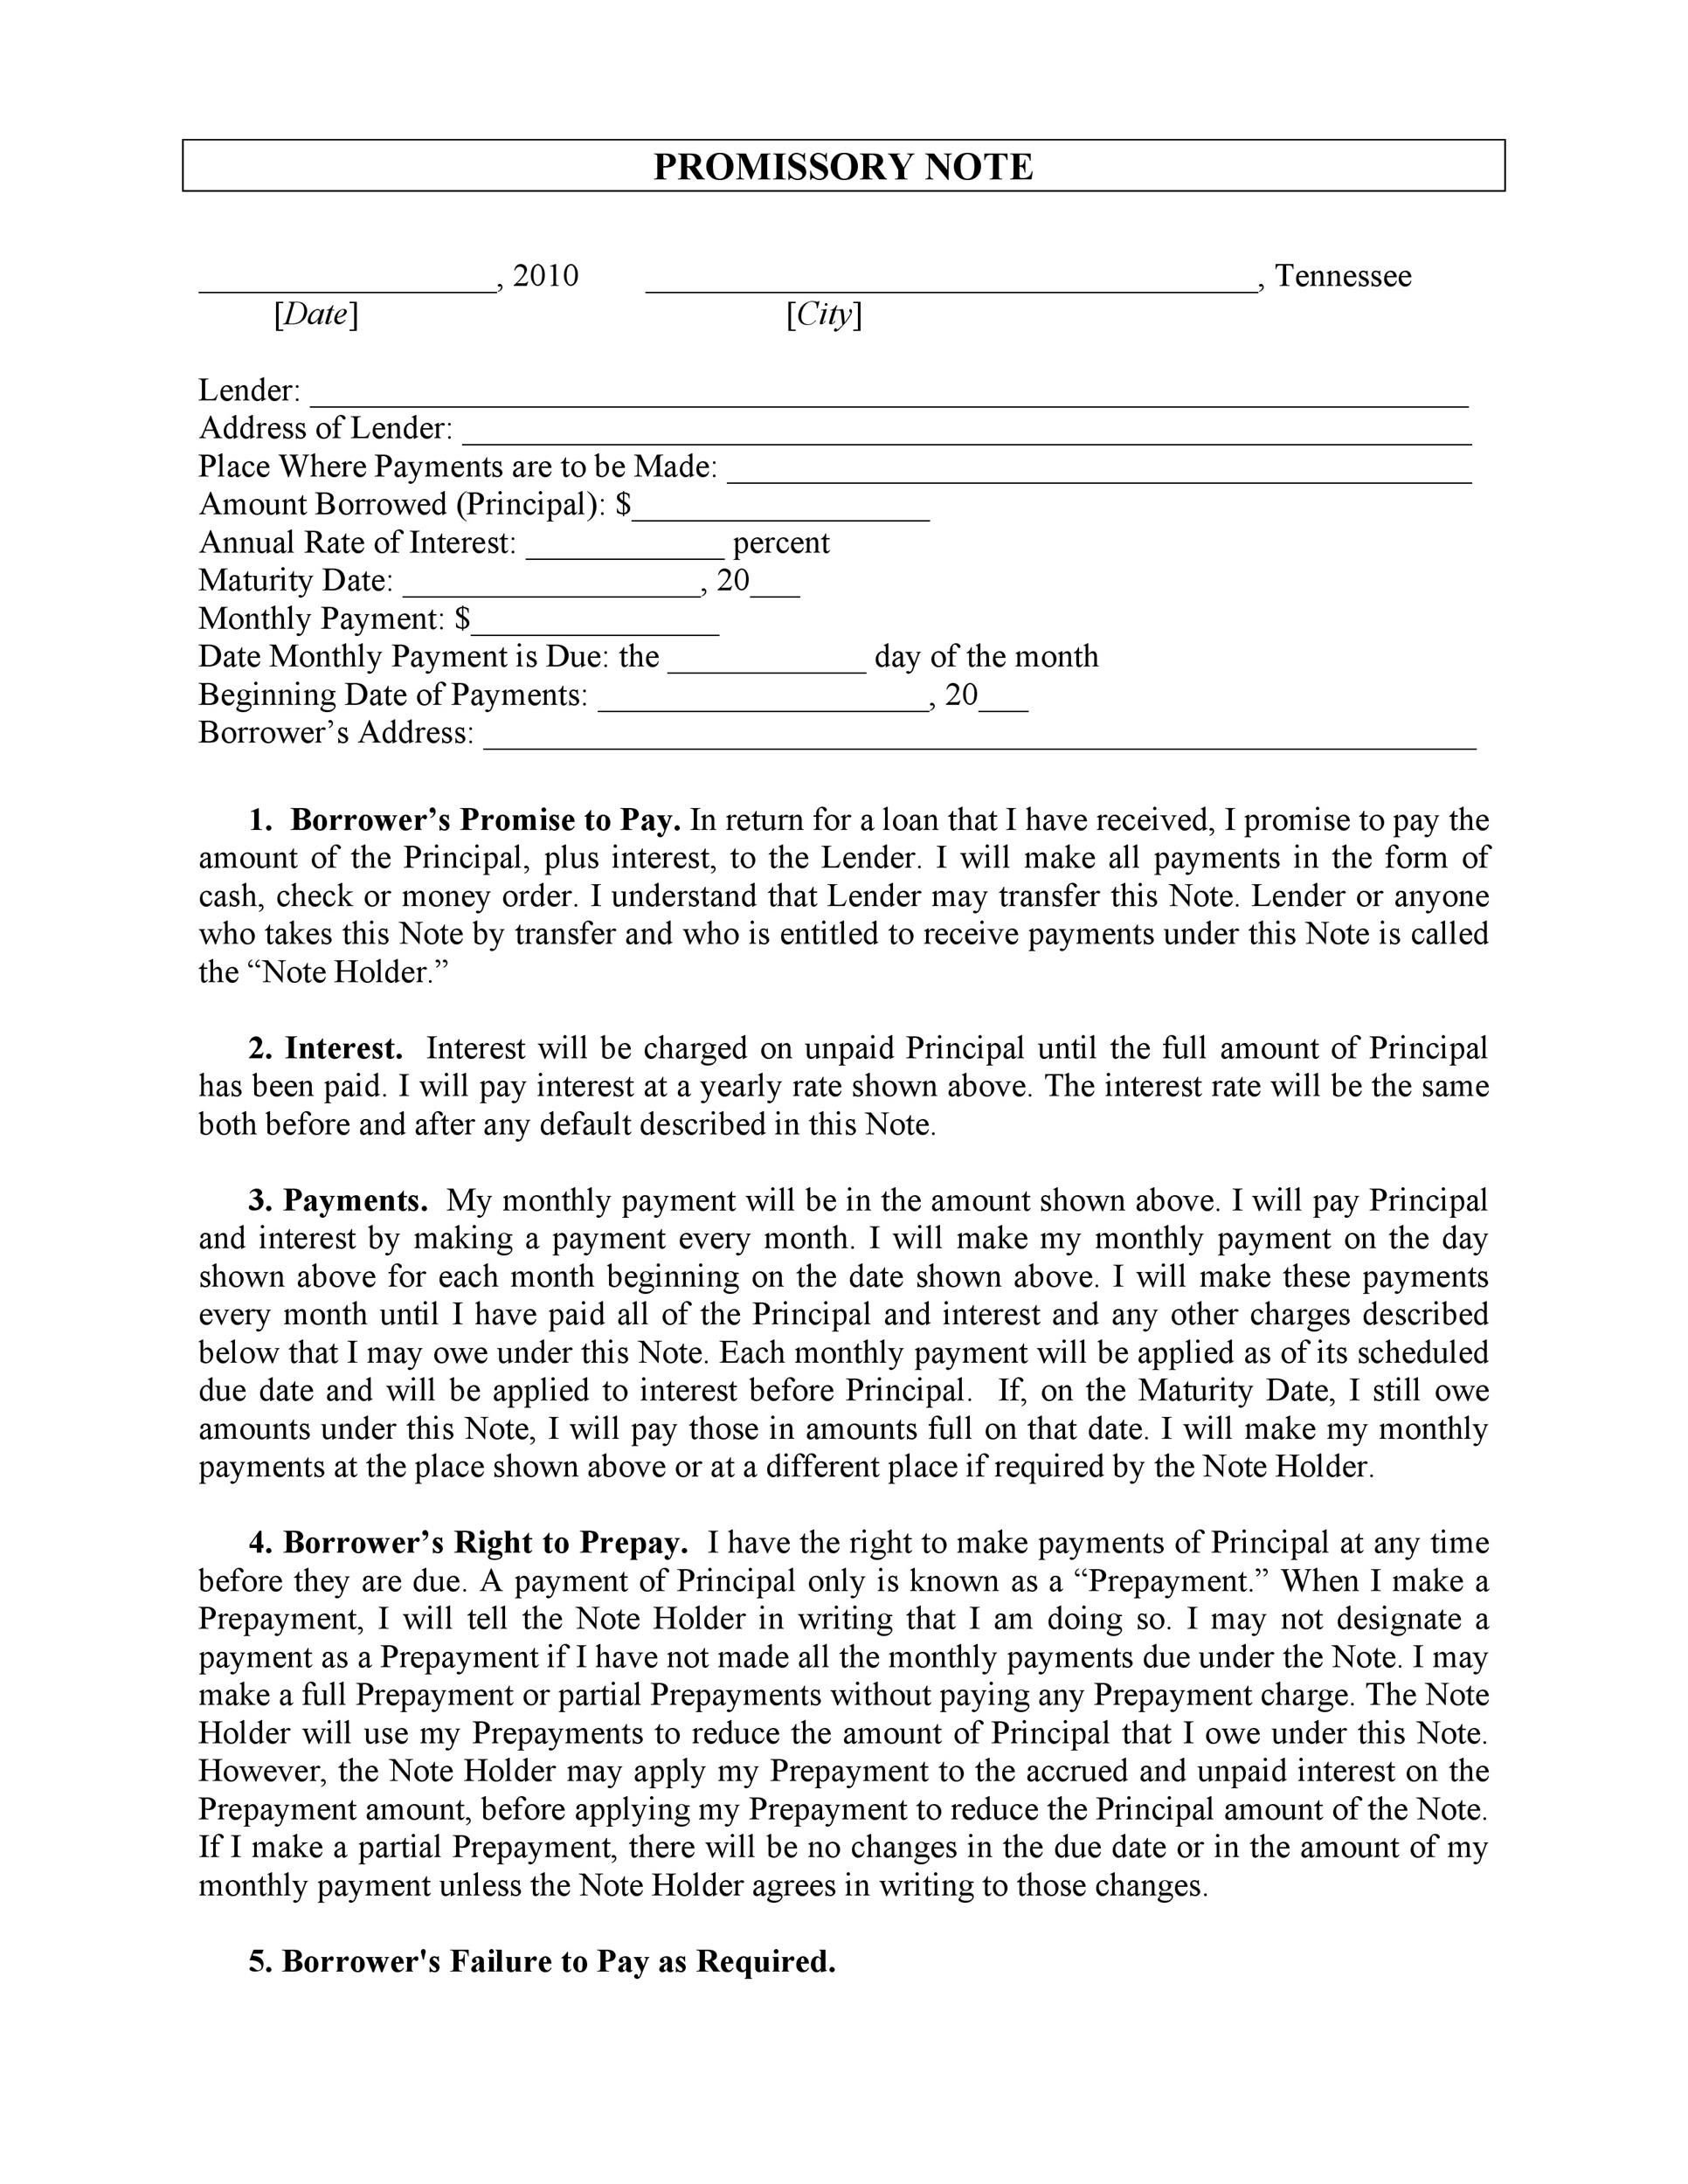 Charming Printable Promissory Note Template 27 With Legal Promise To Pay Document